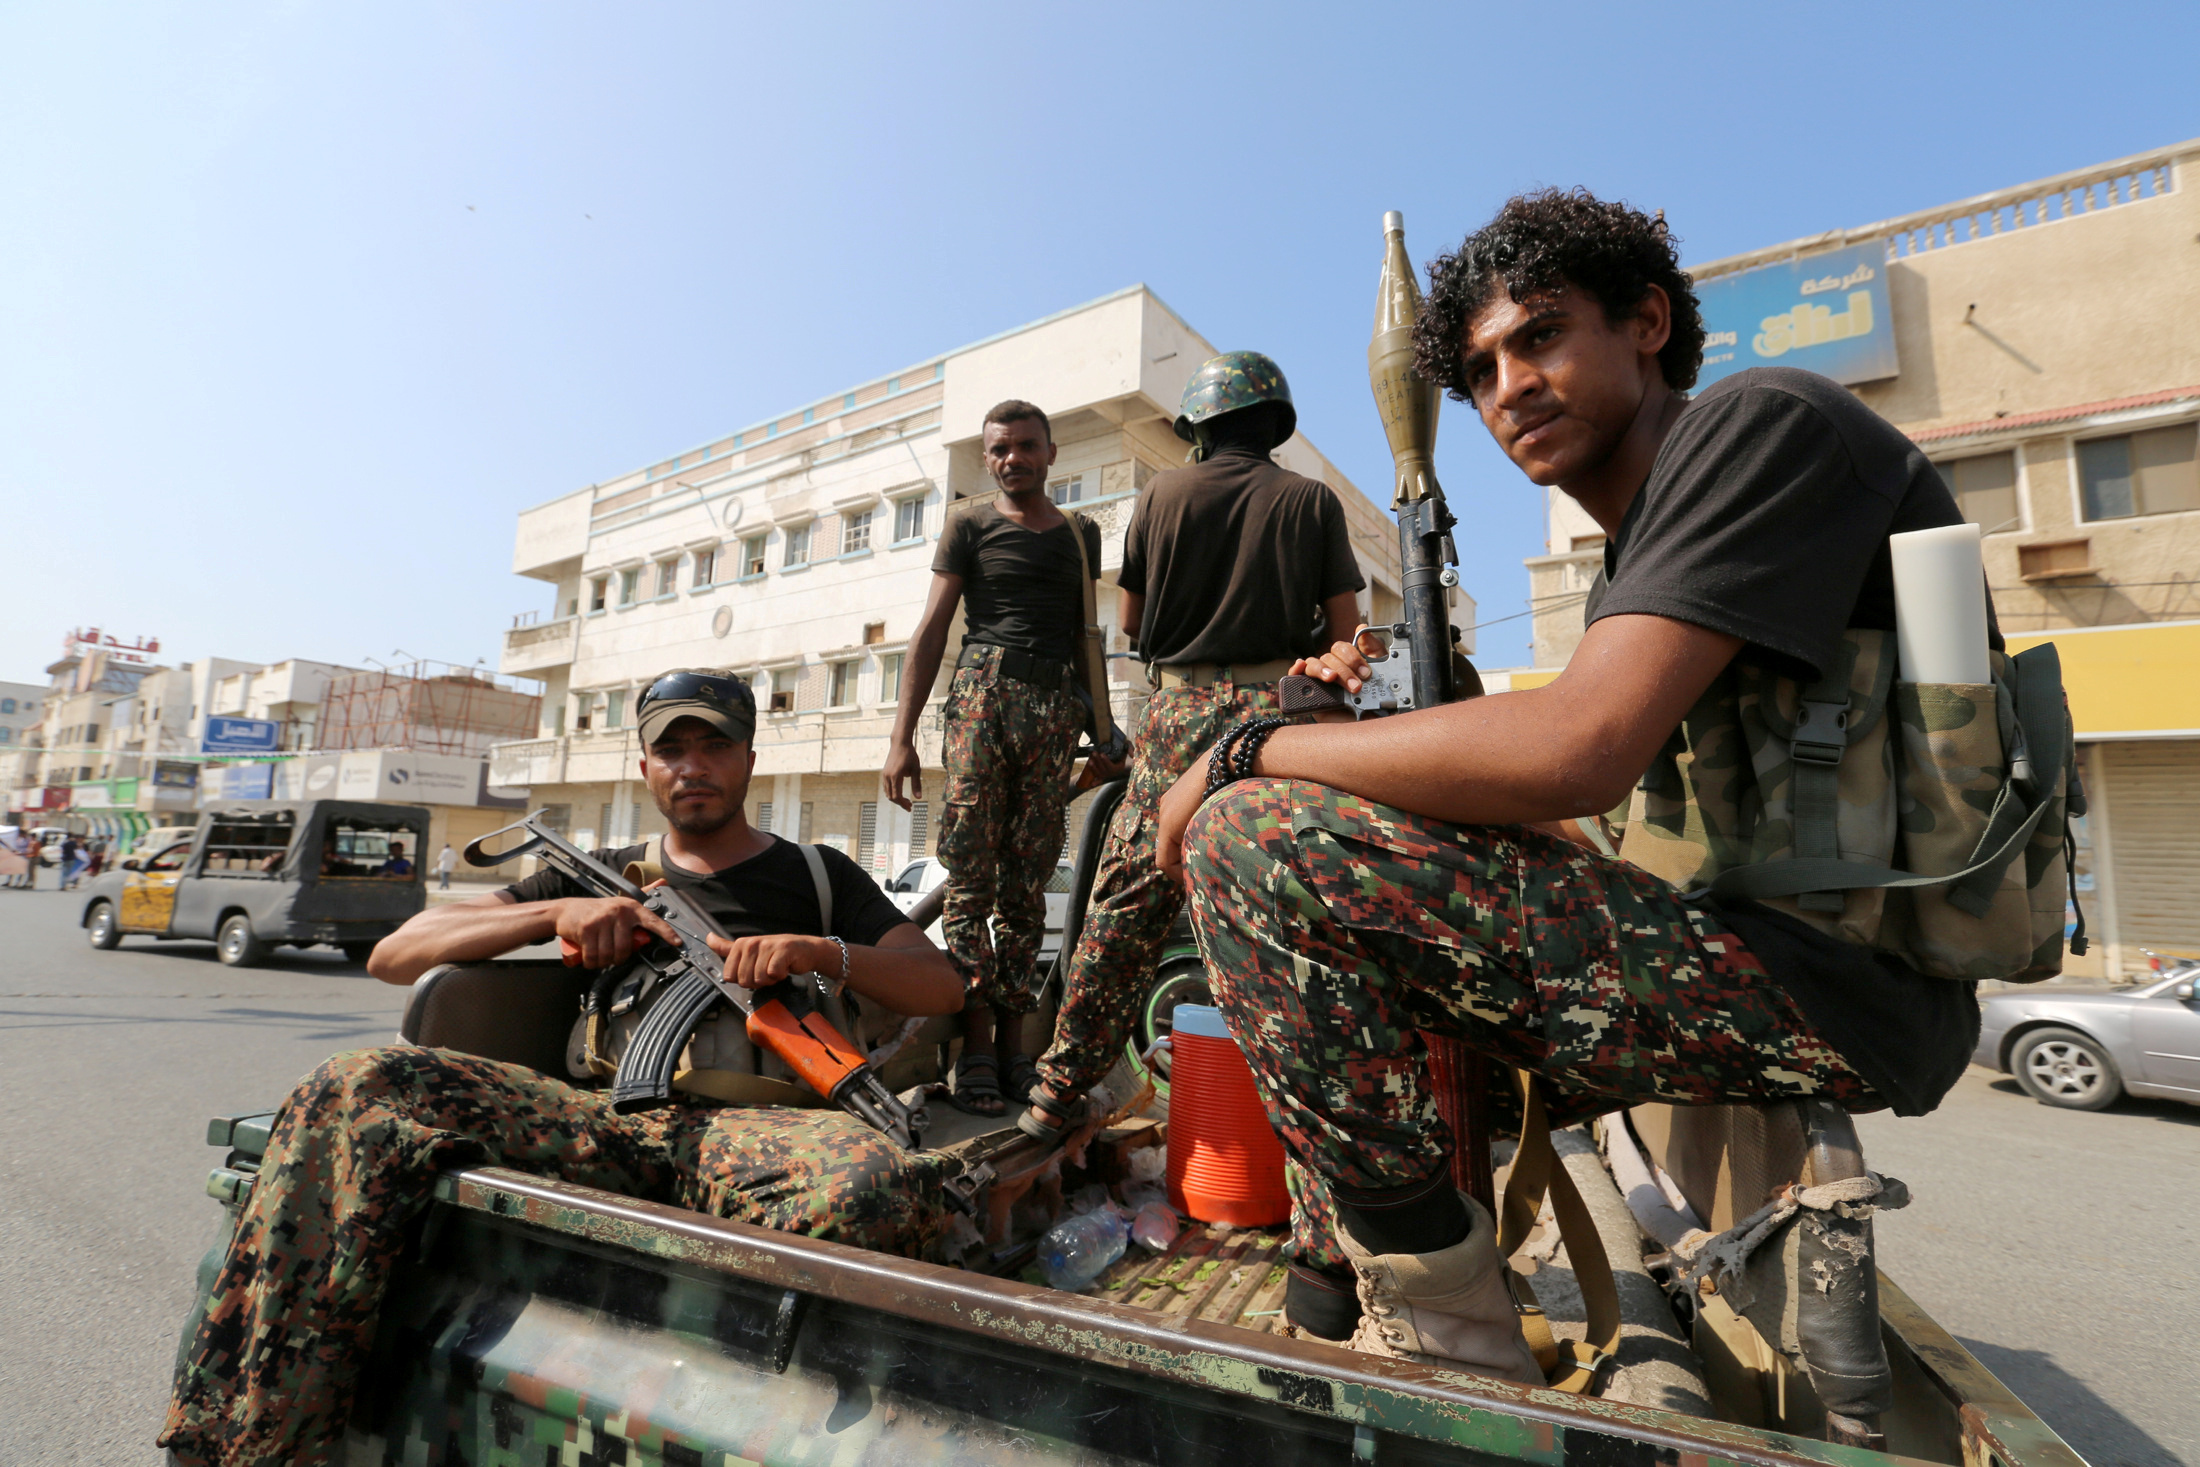 FILE PHOTO: Houthi militants patrol a street where pro-Houthi protesters demonstrated against the Saudi-led coalition in Hodeidah, Yemen Dec. 10, 2018